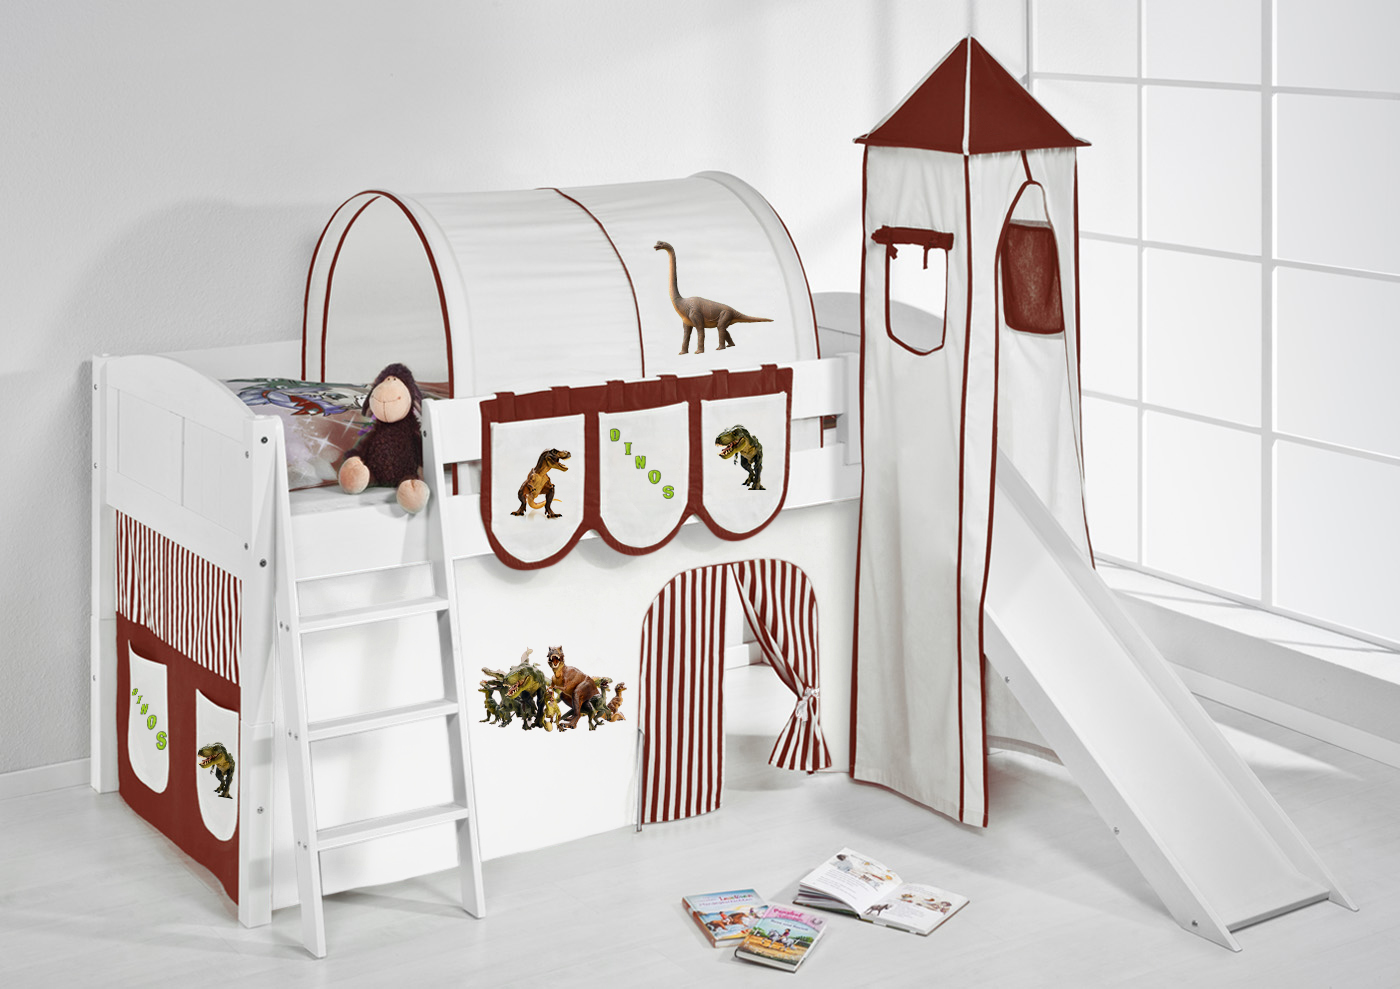 spielbett hochbett kinderbett kinder bett mit turm und rutsche 4106 ebay. Black Bedroom Furniture Sets. Home Design Ideas